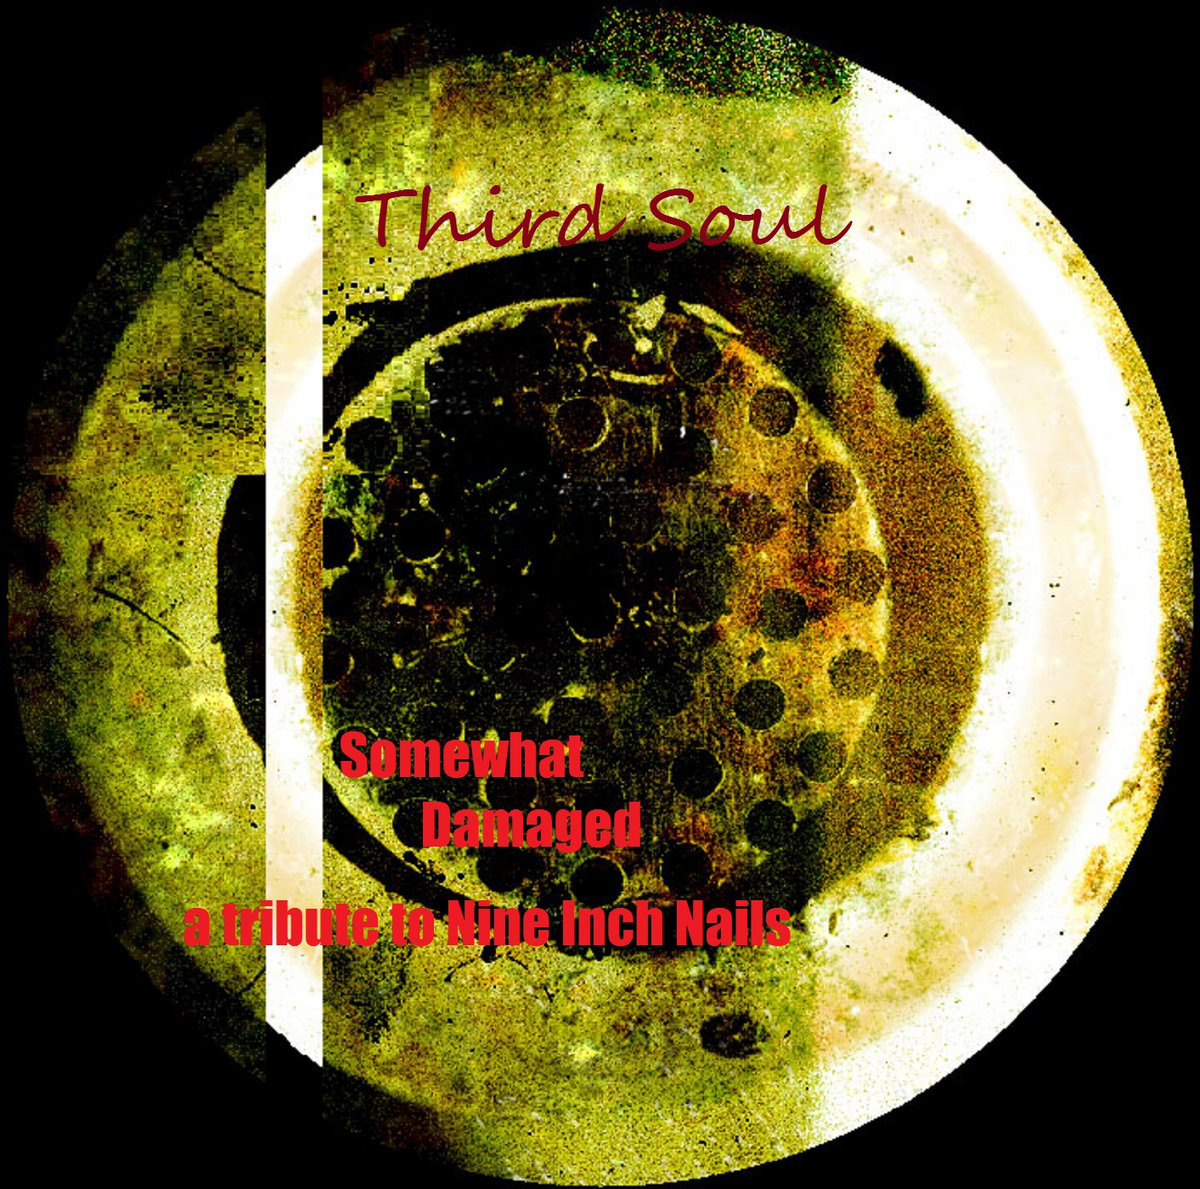 The Perfect Drug | thirdsoul